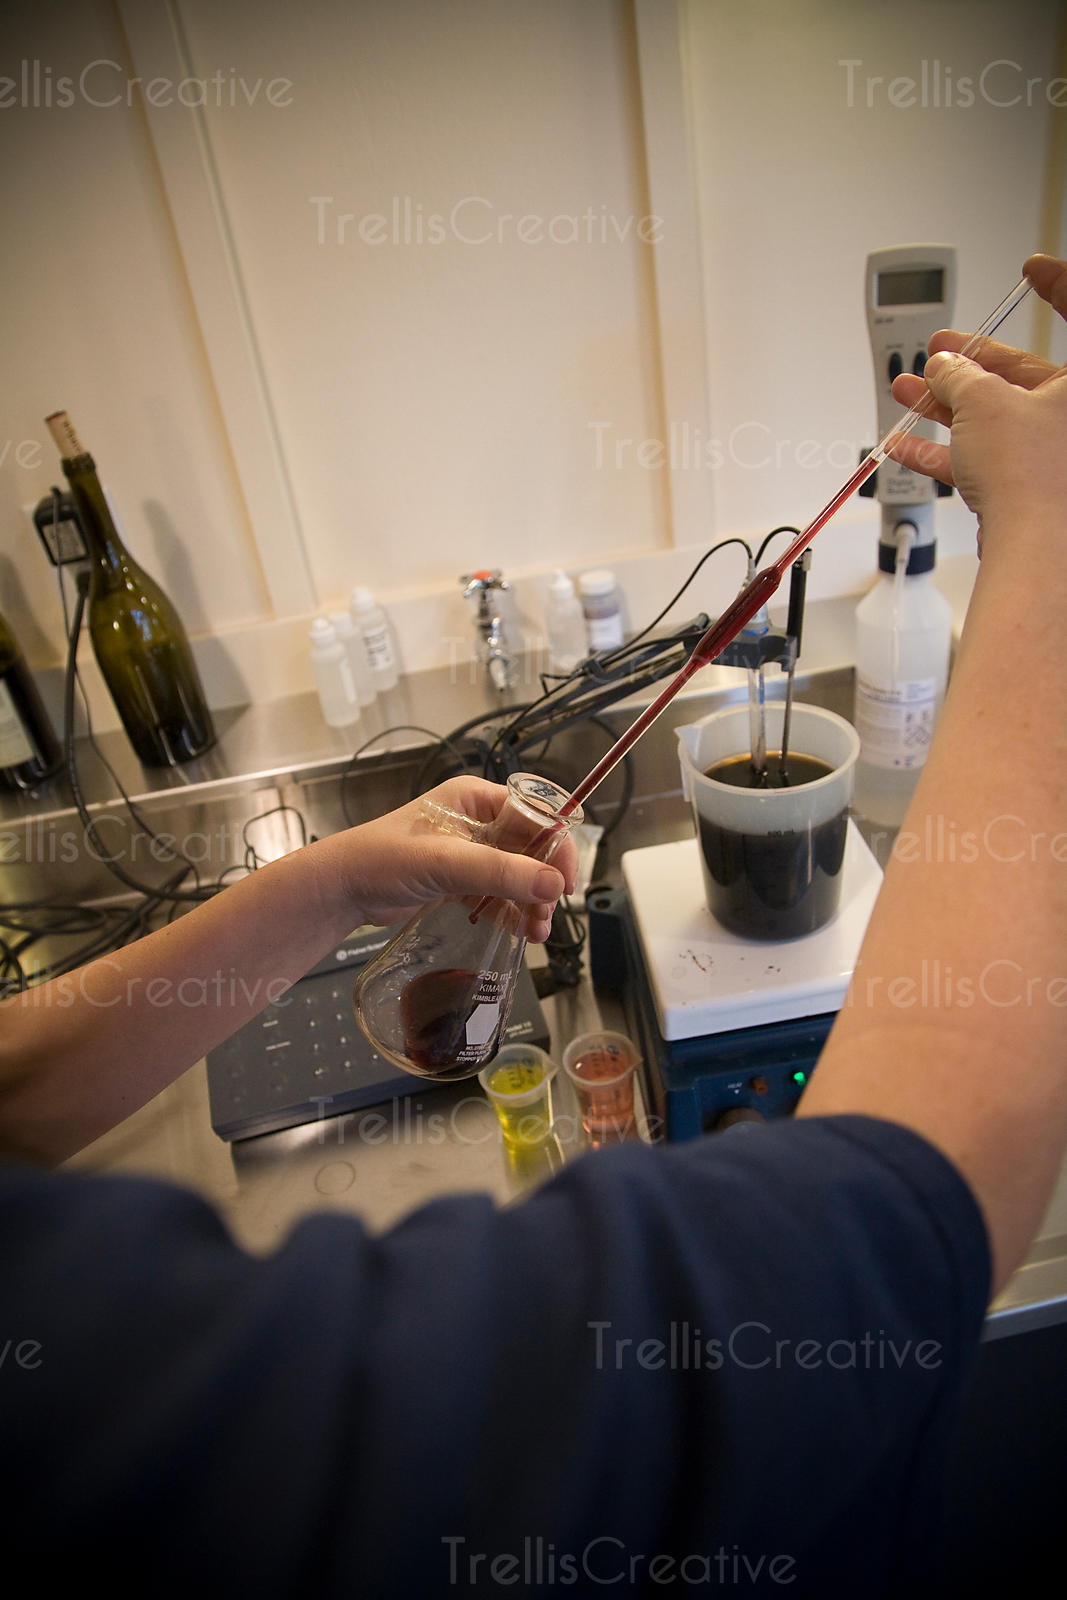 Analyzing chemistry of wine in labratory